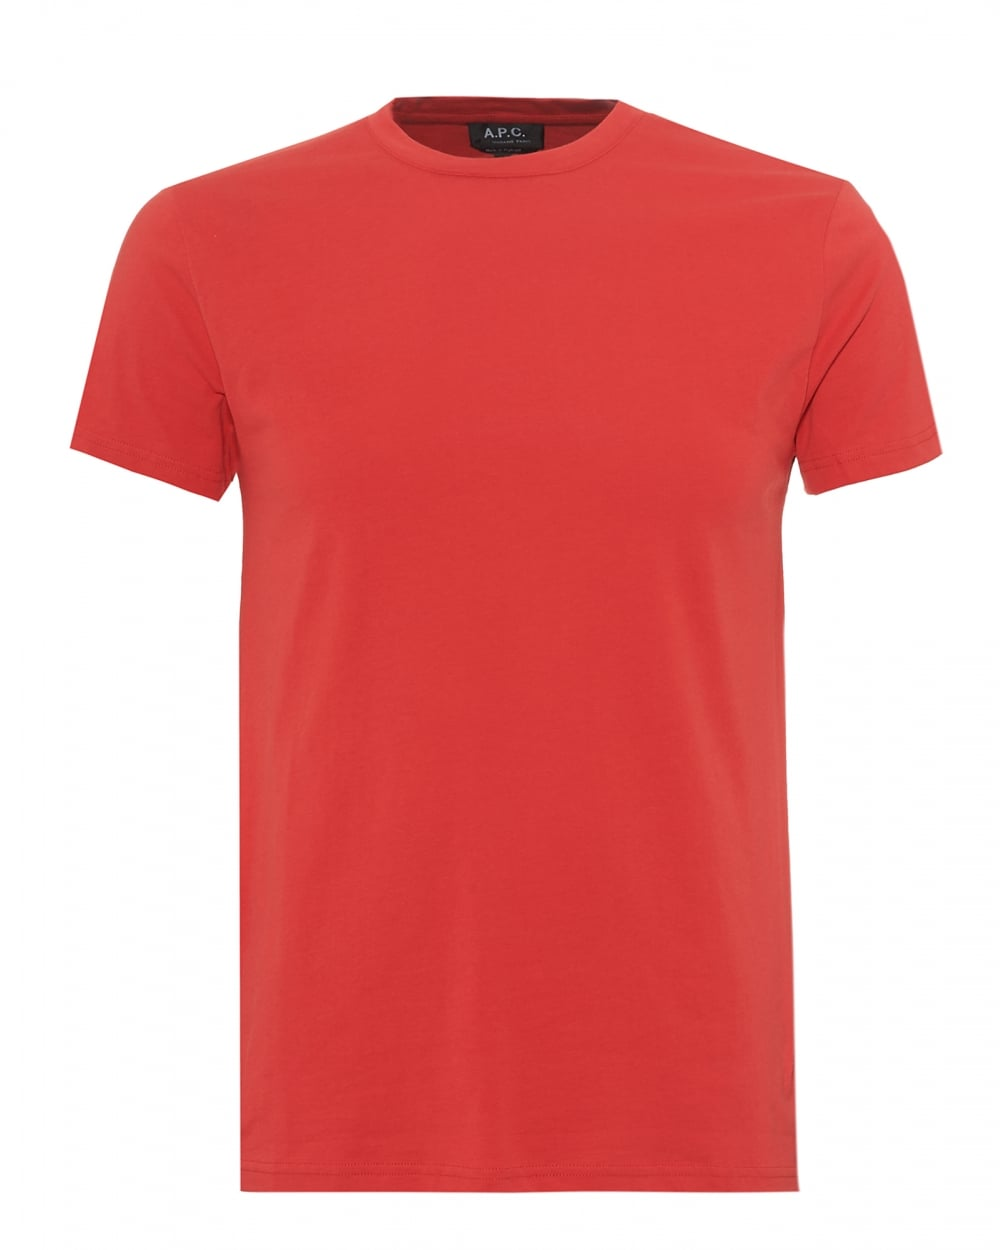 A p c mens plain short sleeve t shirt regular fit red tee for Men s regular fit shirts